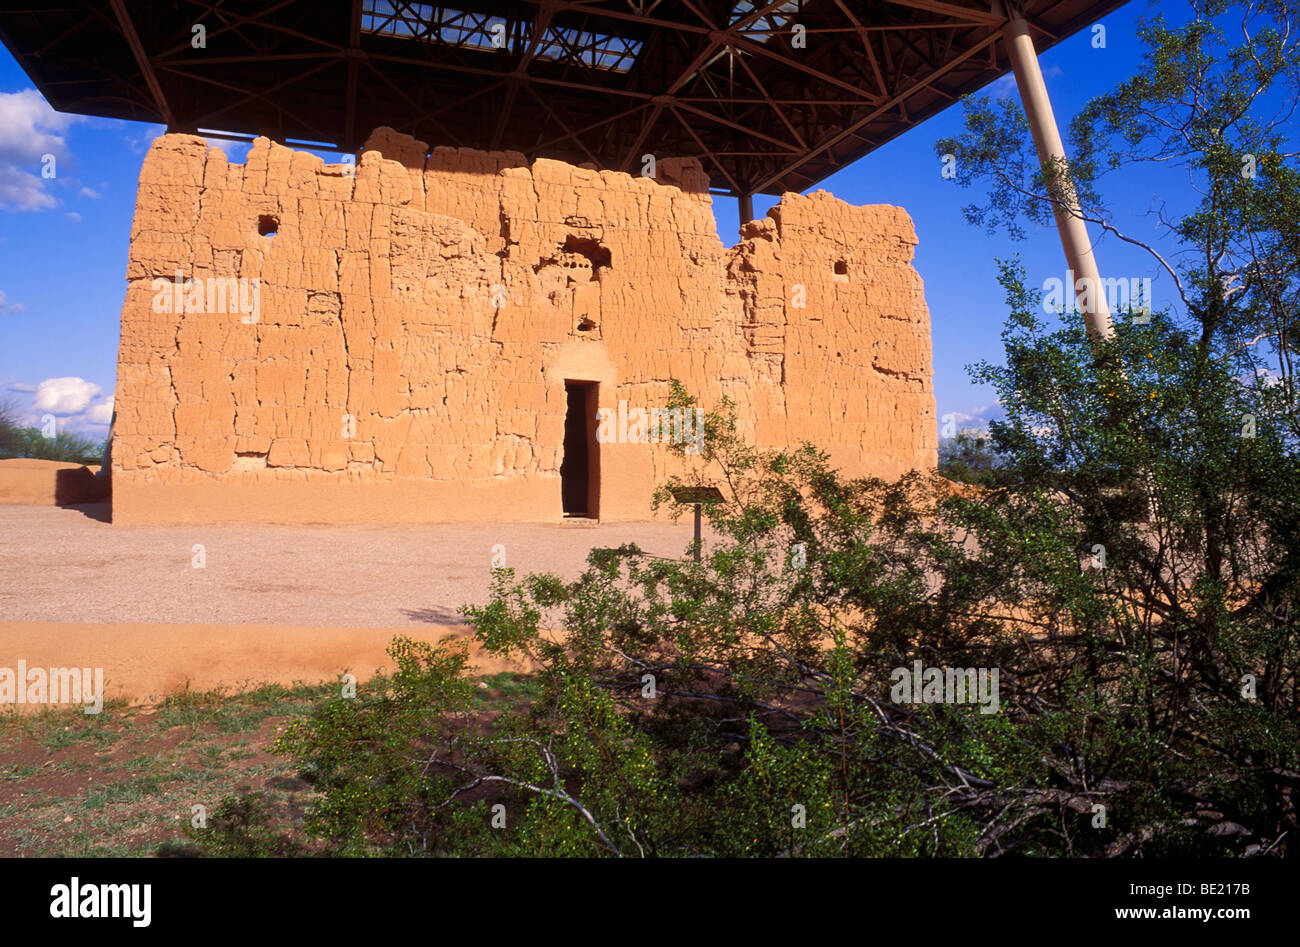 Afternoon light on the west entrance of Casa Grande Ruins, Casa Grande Ruins National Monument Stock Photo